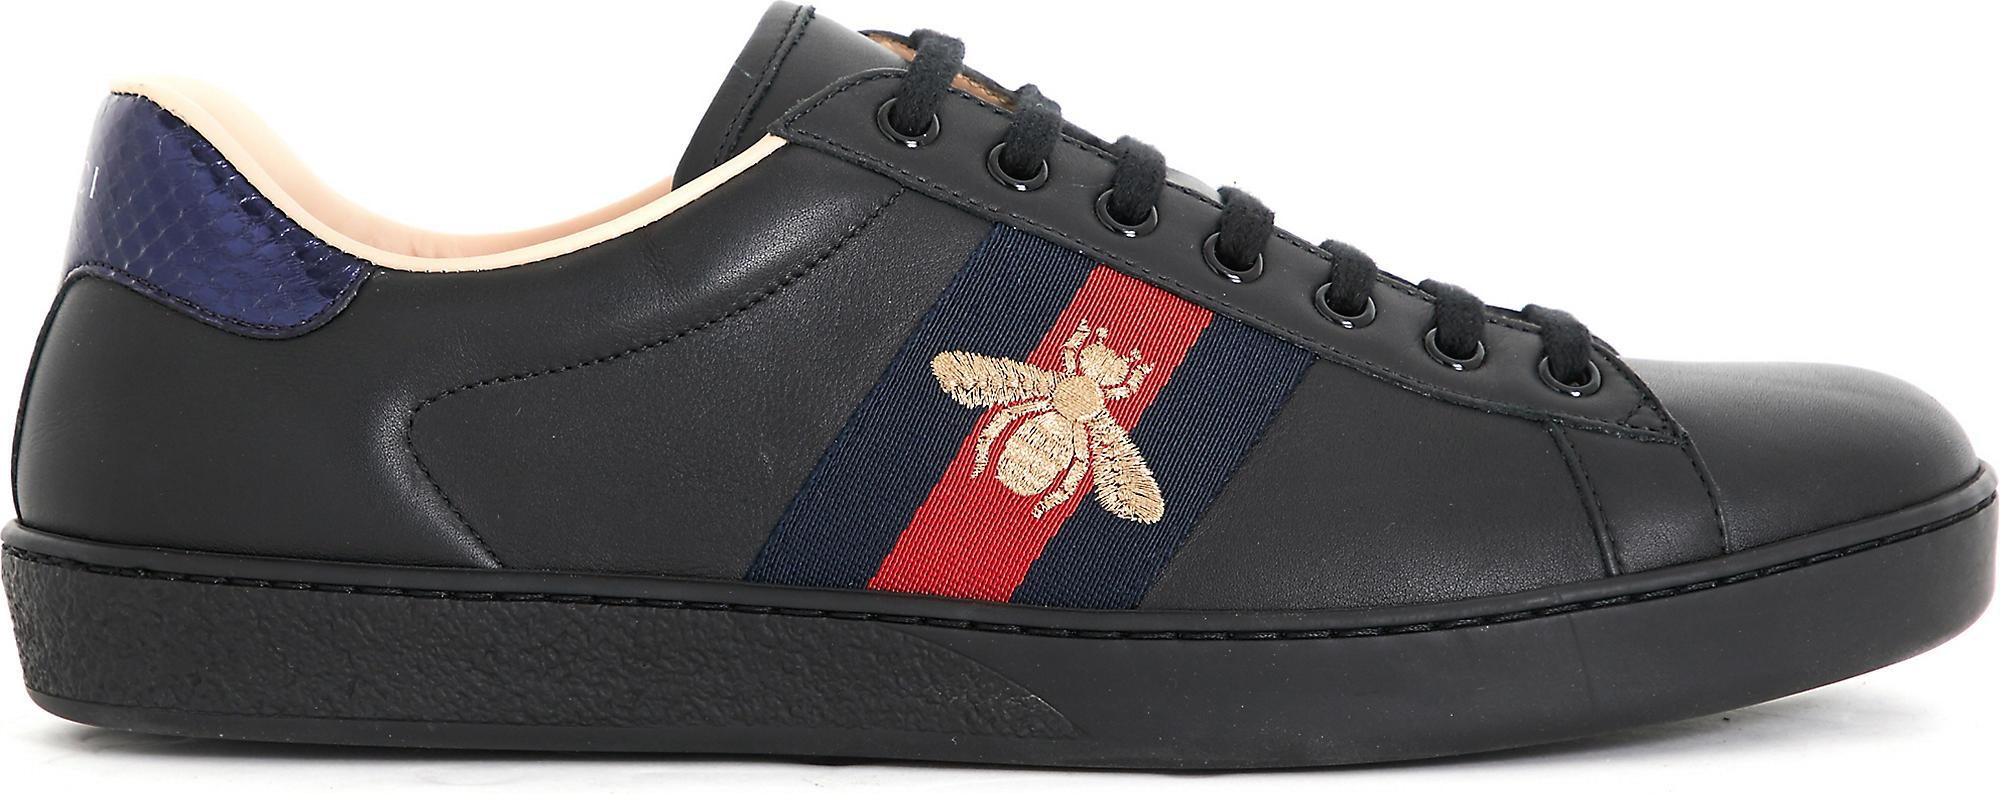 3890fcc0f6b Lyst - Gucci Ace Embroidered Bee Leather Low-top Trainers in Black ...